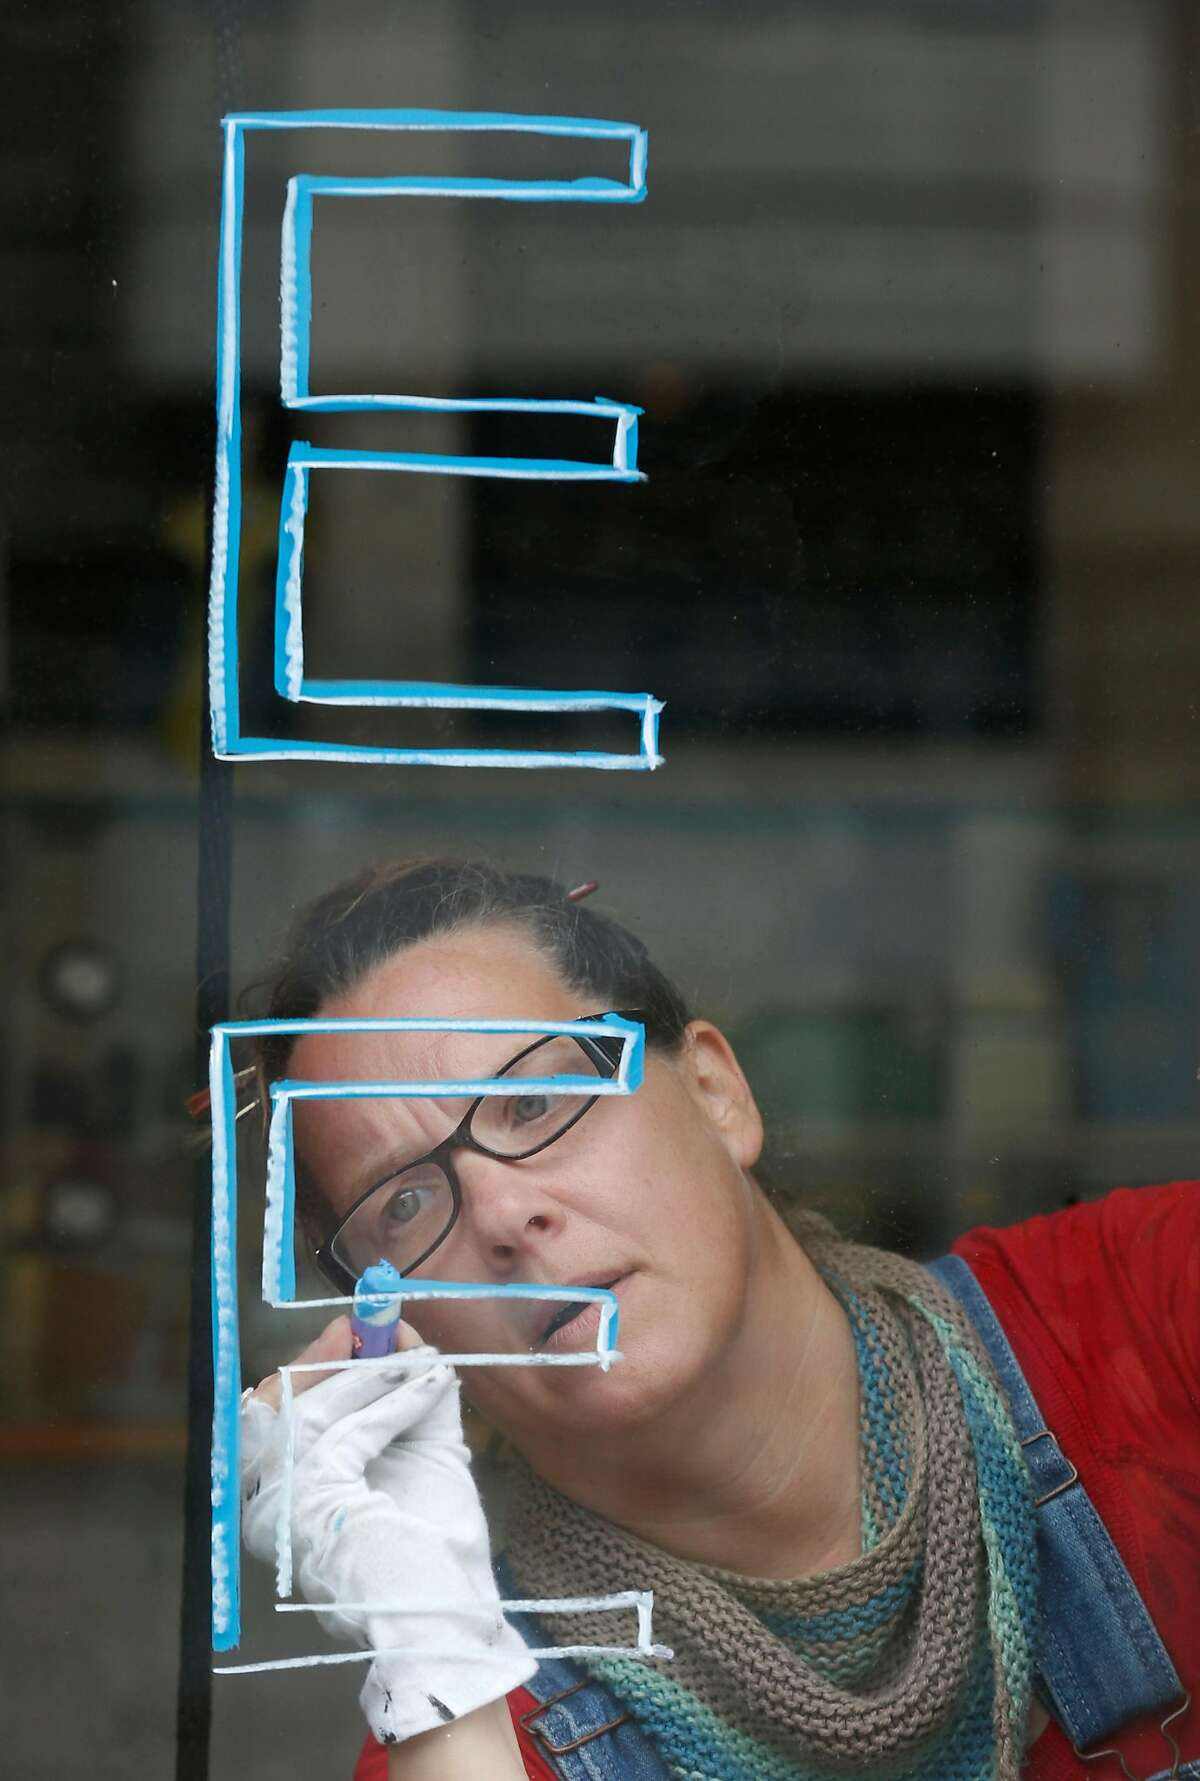 Sign painter Libby Staub applies lettering to the window of Altalena Vinoteca in San Francisco, Calif. on Thursday, May 14, 2020. Staub is angry that Veritas, manager of more than 250 apartment buildings in the city, including hers, received 3.6 million in PPP relief funds form the federal government but she has yet to receive hers.